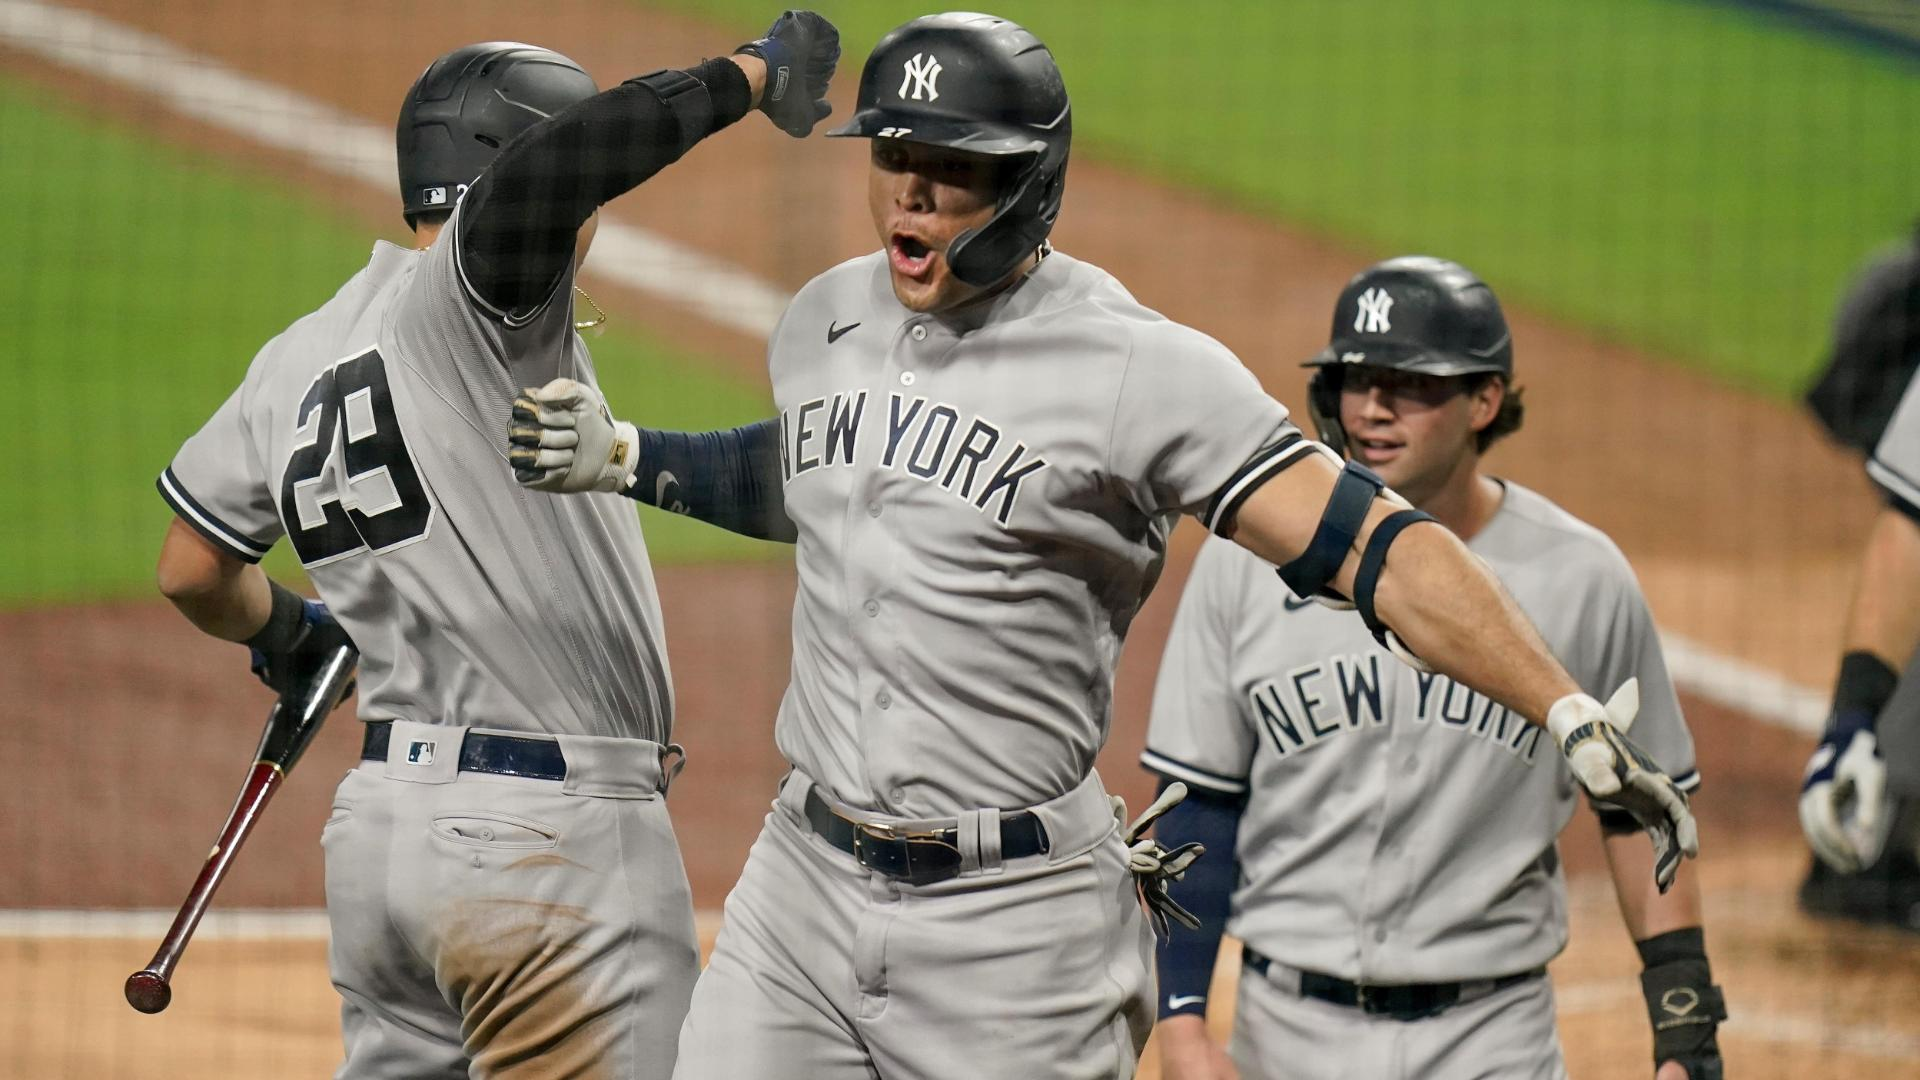 Stanton's grand slam blows game open in ninth